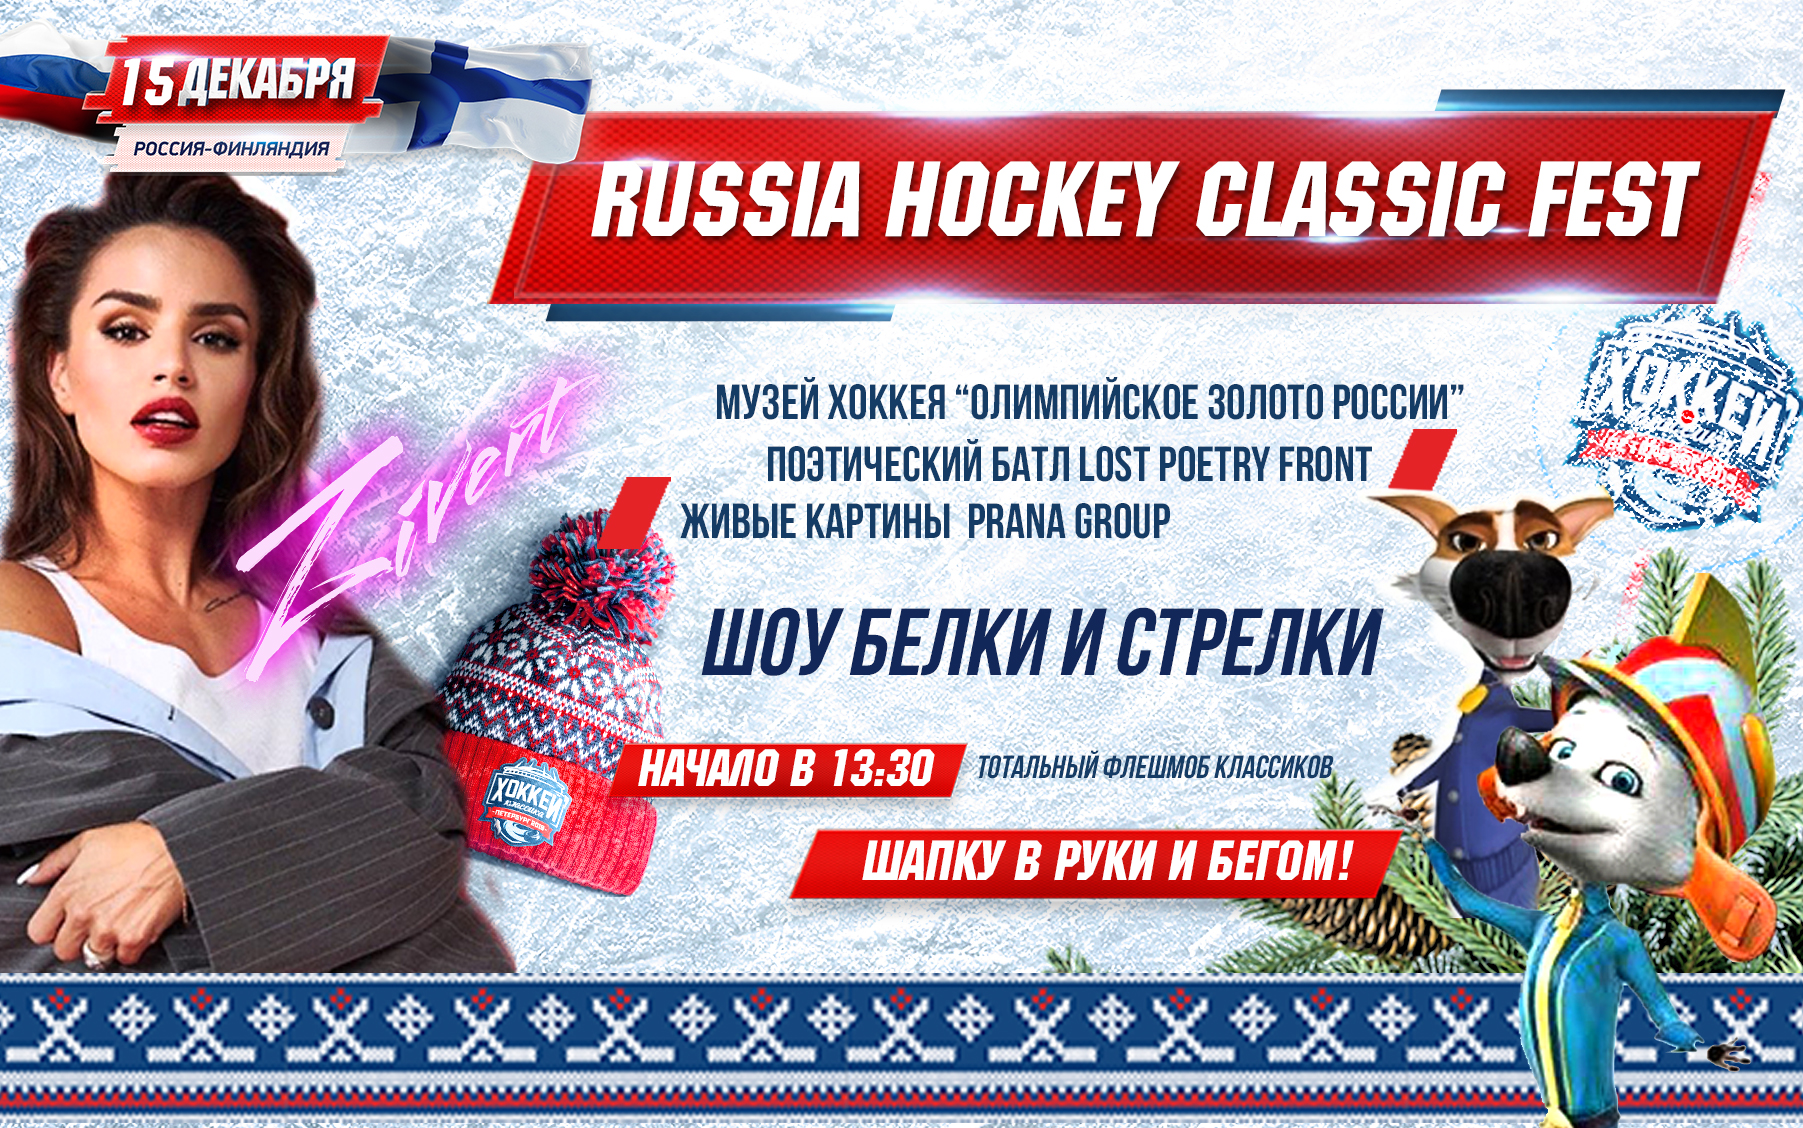 Russia Hockey Classic Fest at the 2019 Channel One Cup match